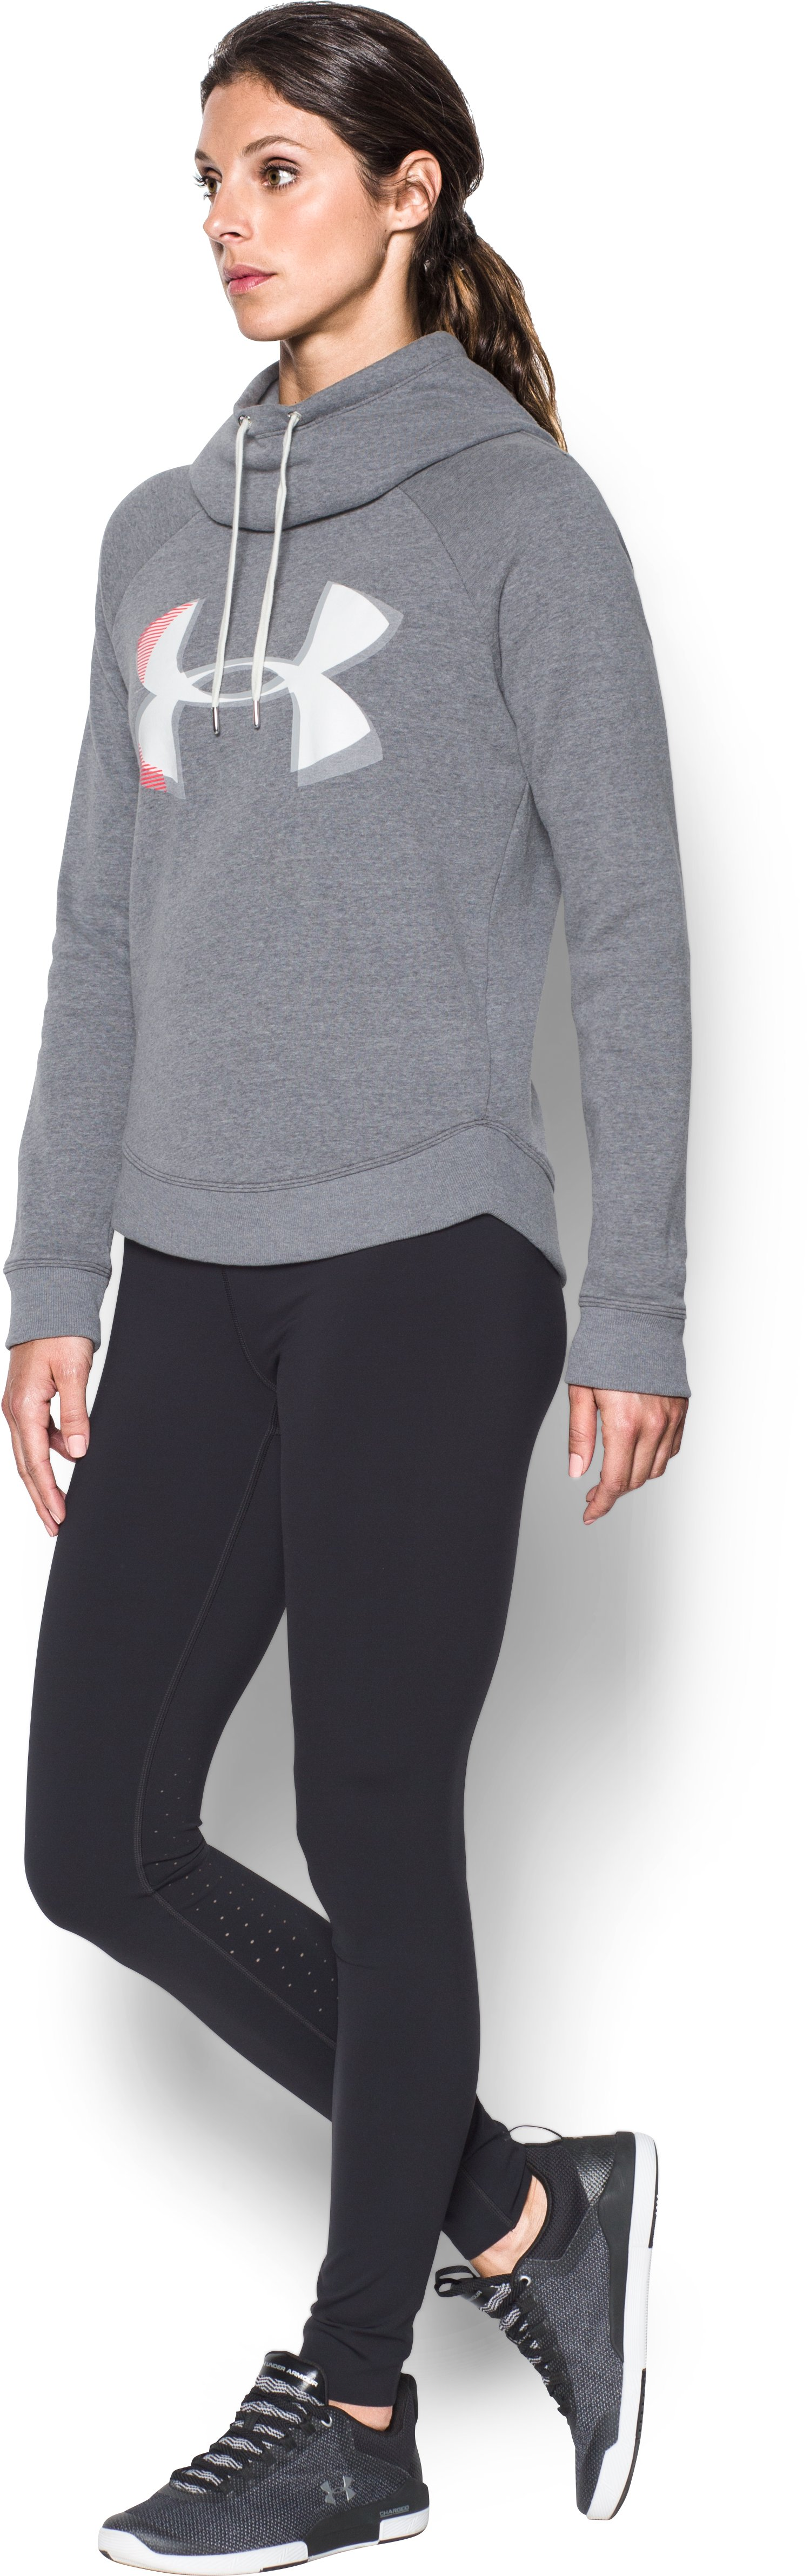 Women's UA Fashion Favorite Exploded Logo Pullover, Carbon Heather, undefined